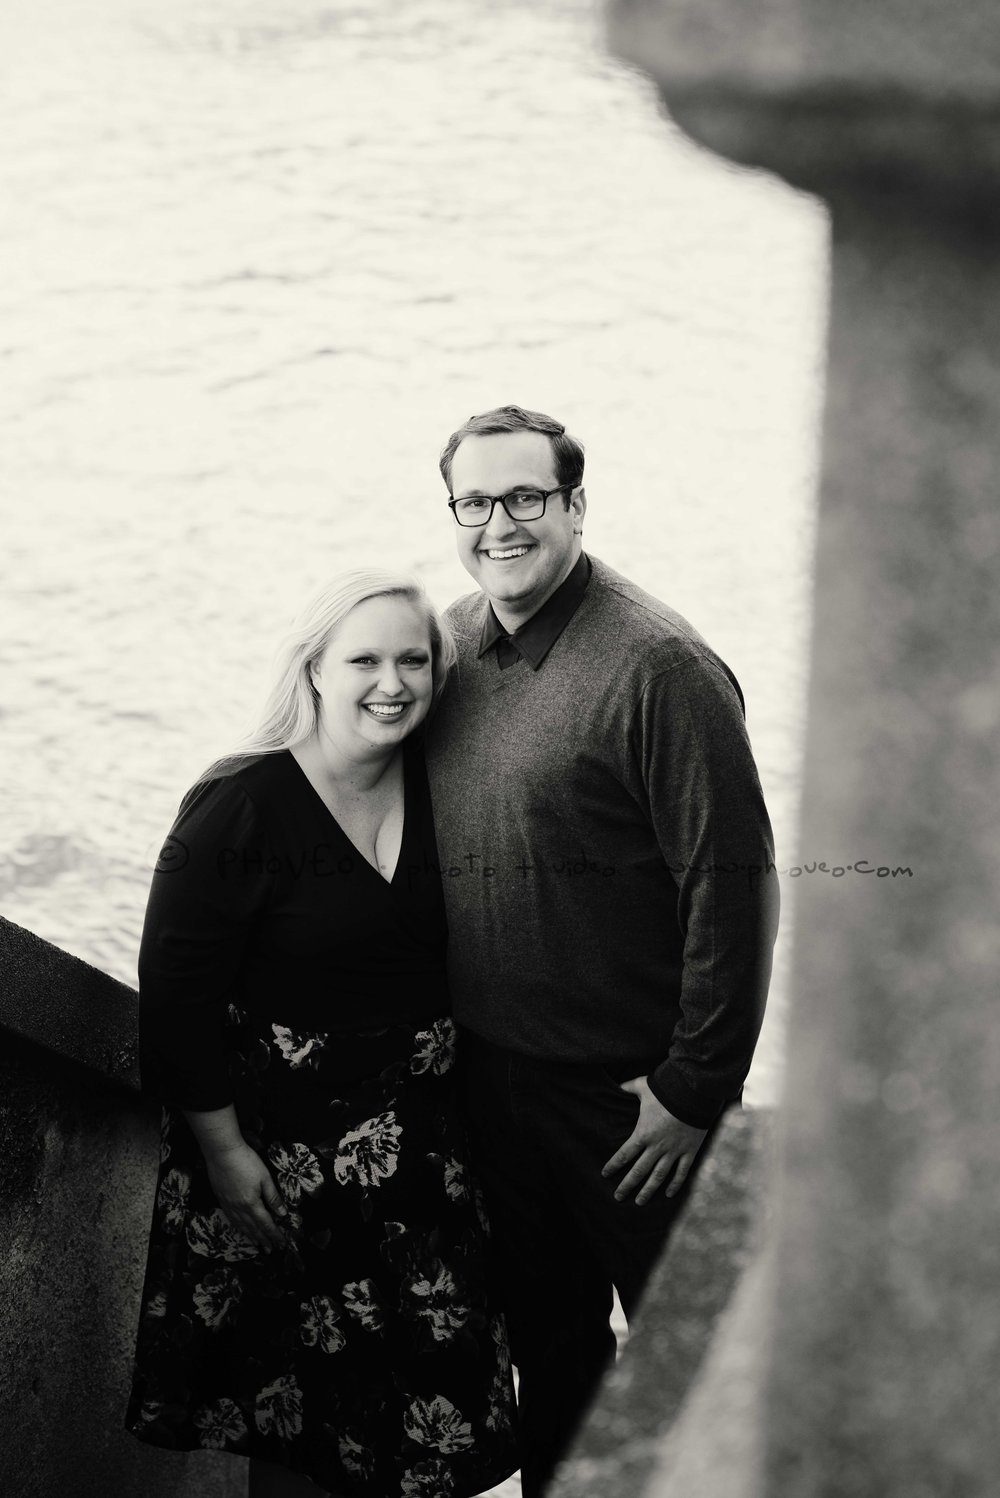 WM_20161113_Amy+Aaron_18bw.jpg